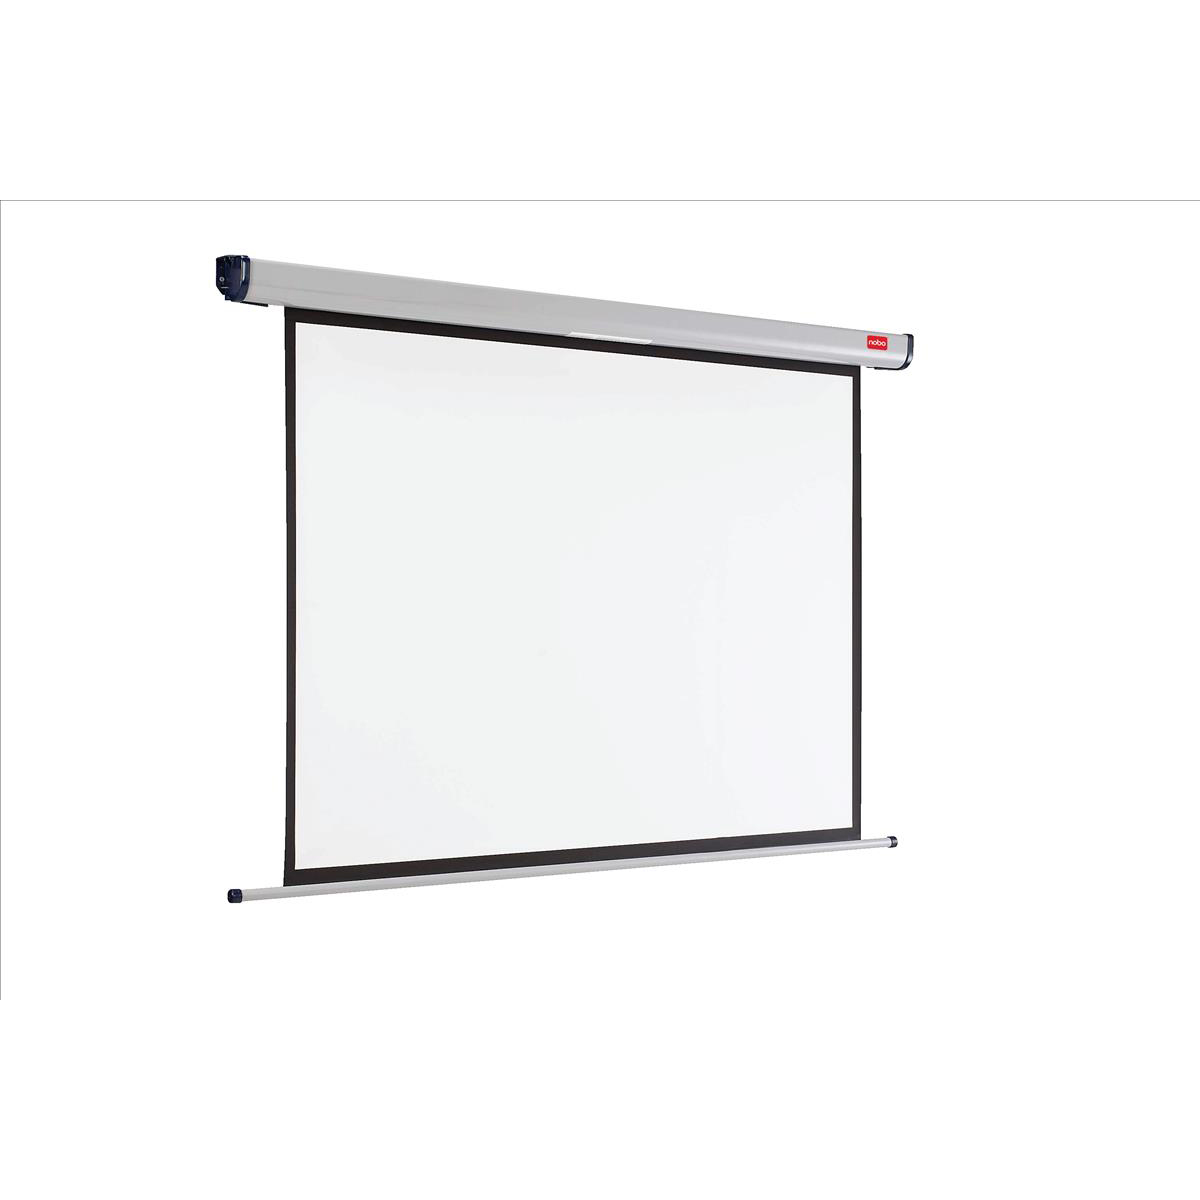 Image for Nobo Wall Widescreen Projection Screen W1500xH1140 Ref 1902391W